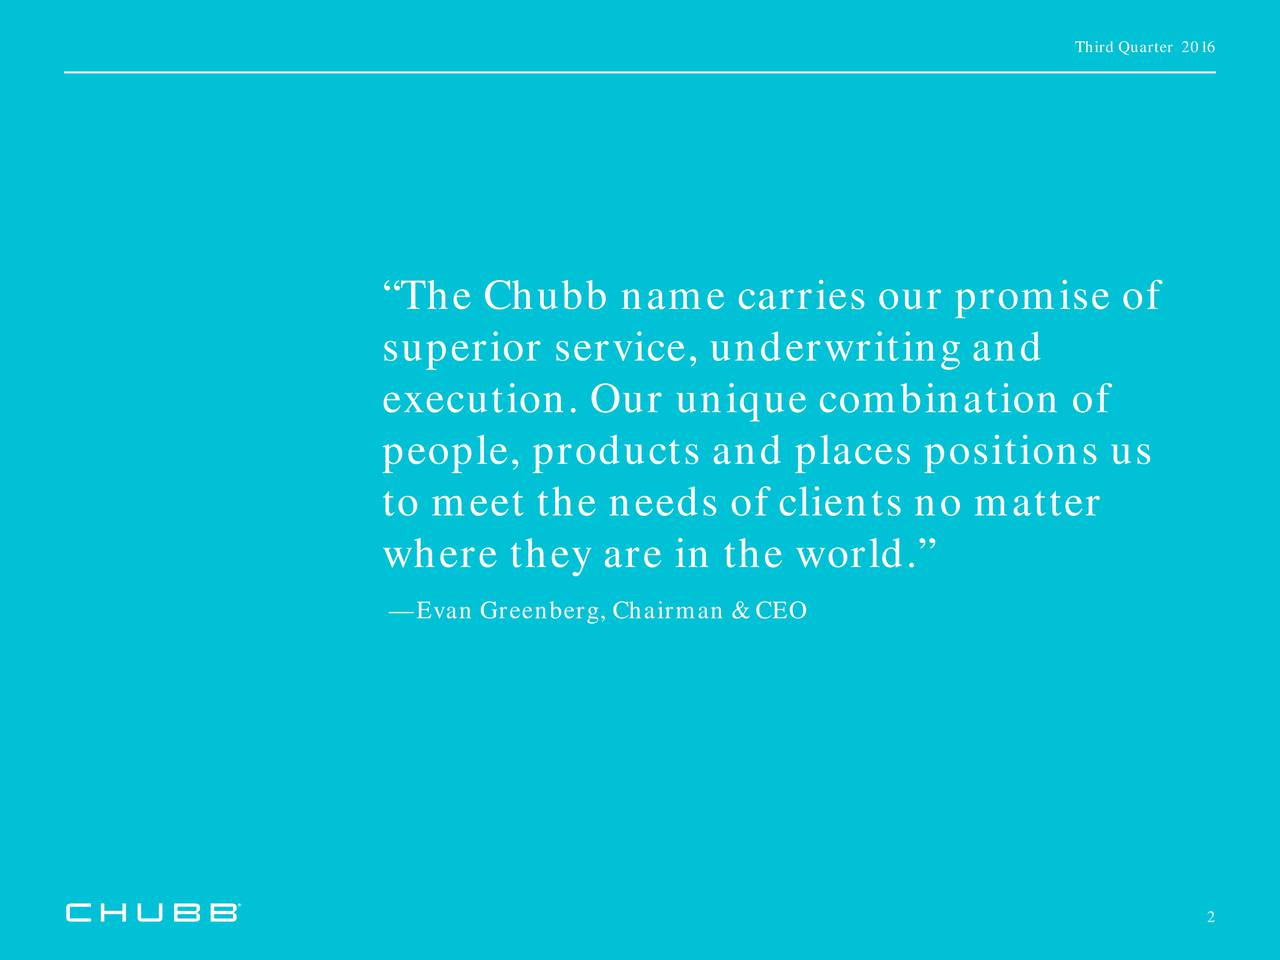 The Chubb name carries our promise of superior service, underwriting and execution. Our unique combination of people, products and places positions us to meet the needs of clients no matter where they are in the world. Evan Greenberg, Chairman & CEO 2